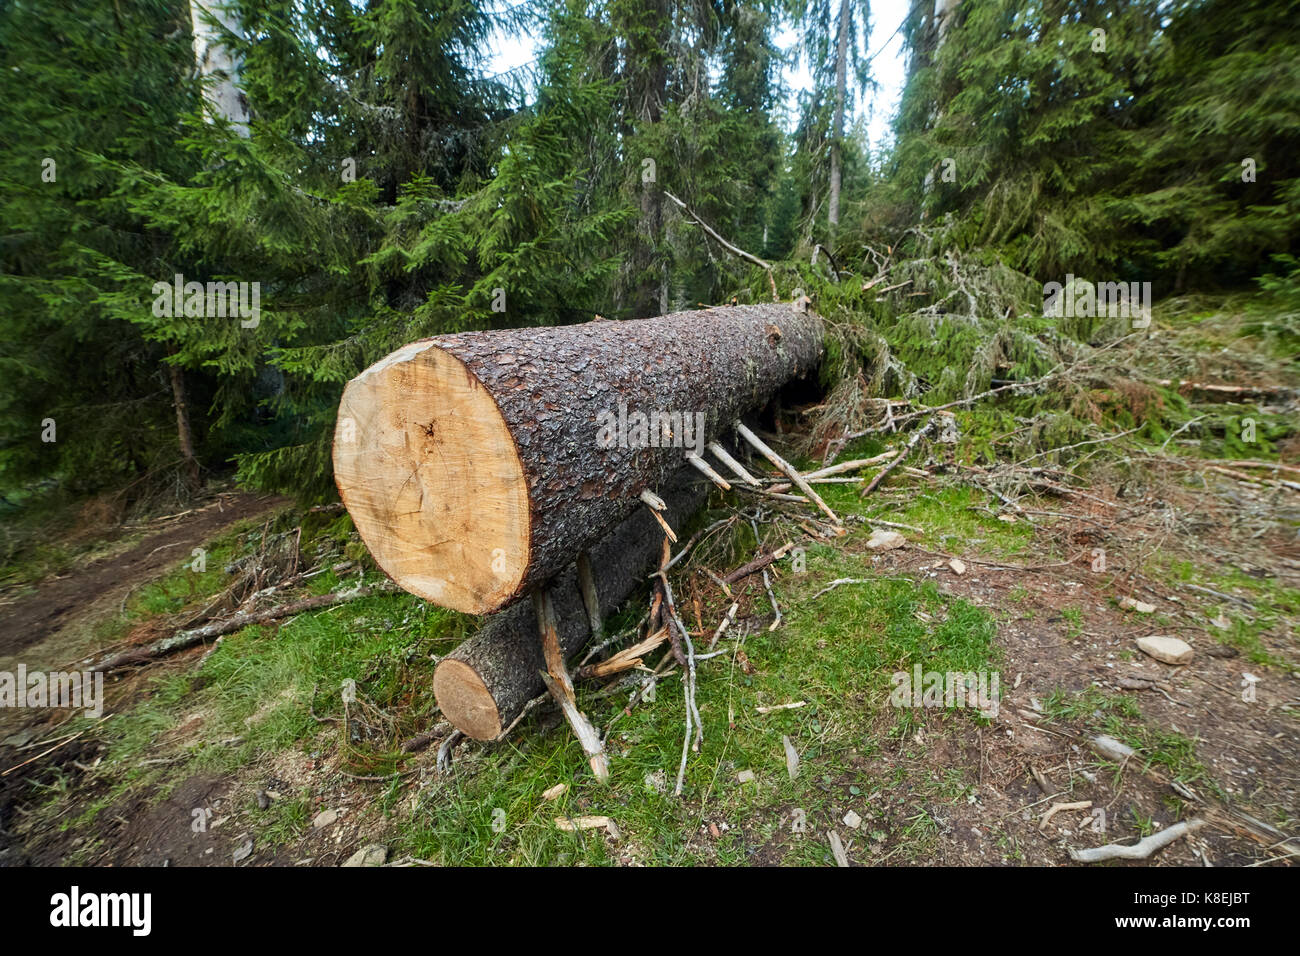 how to cut down trees in the forest game